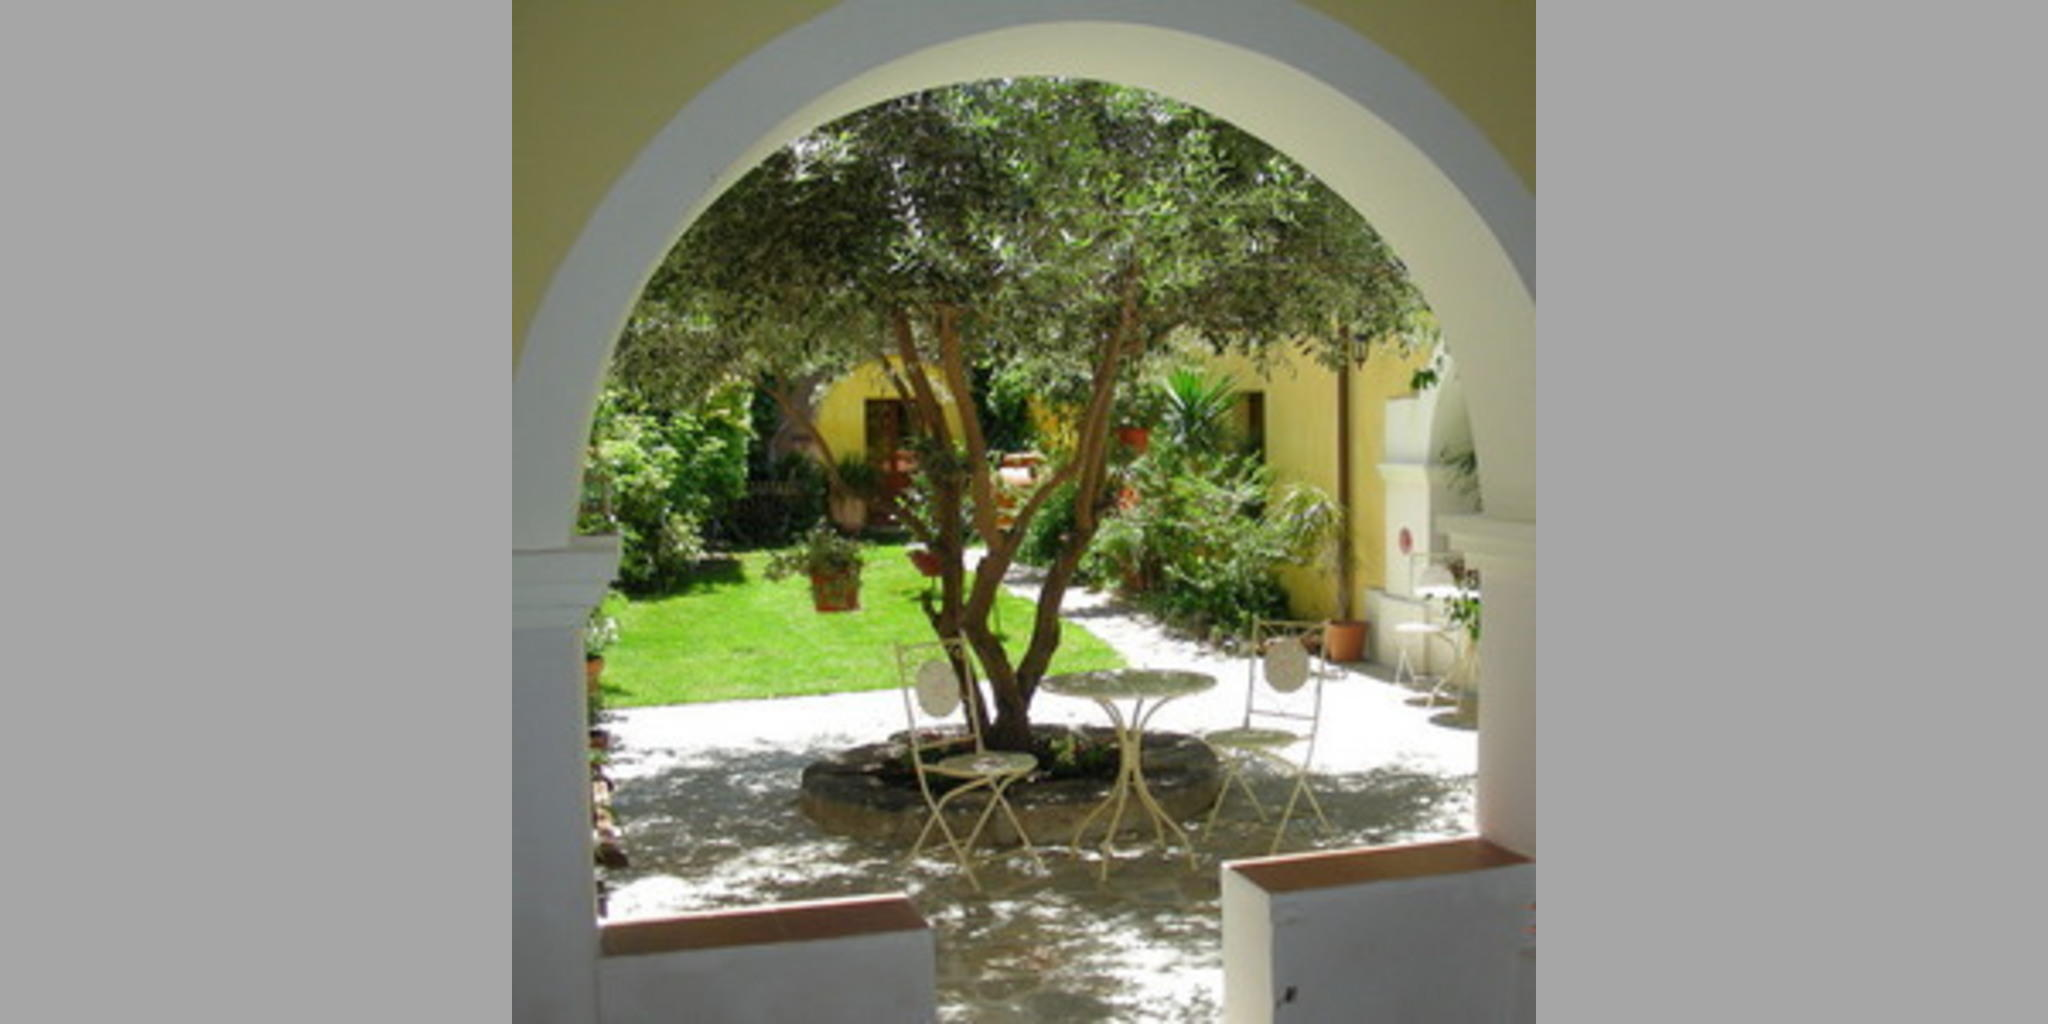 Bed & Breakfast San Vito - San Vito_B